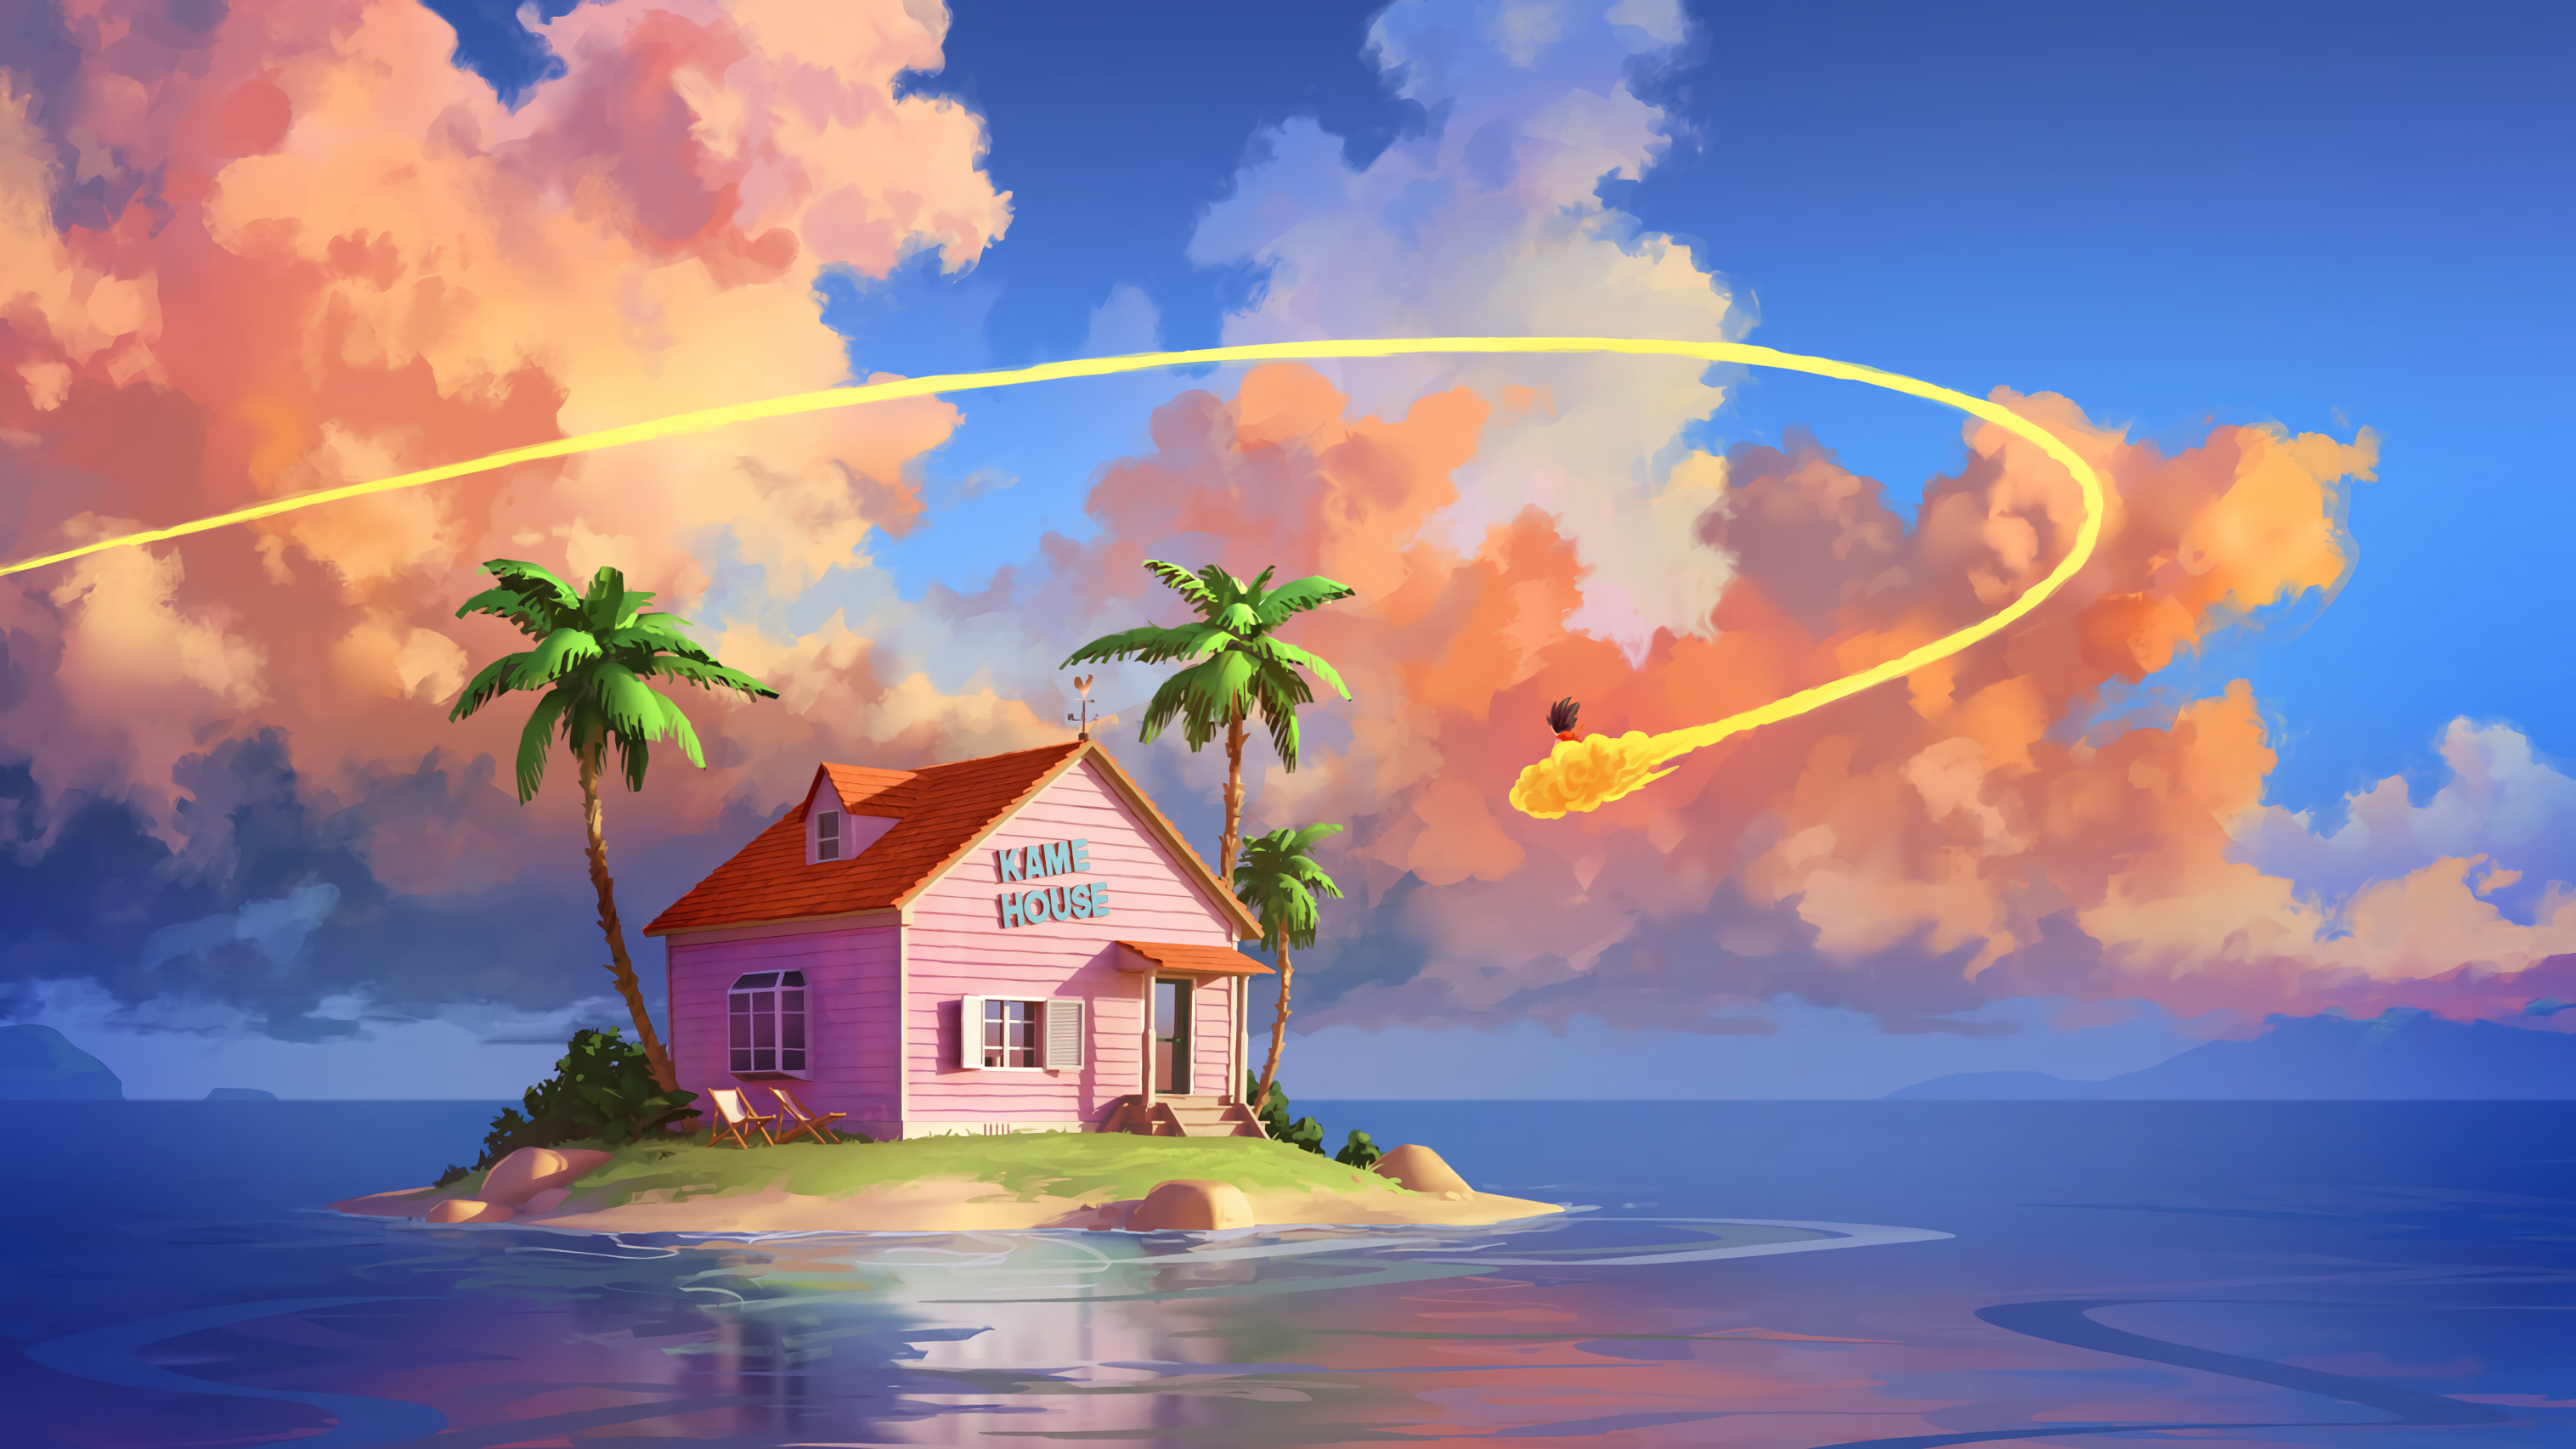 Hd Art Wallpapers Posted By Ethan Thompson